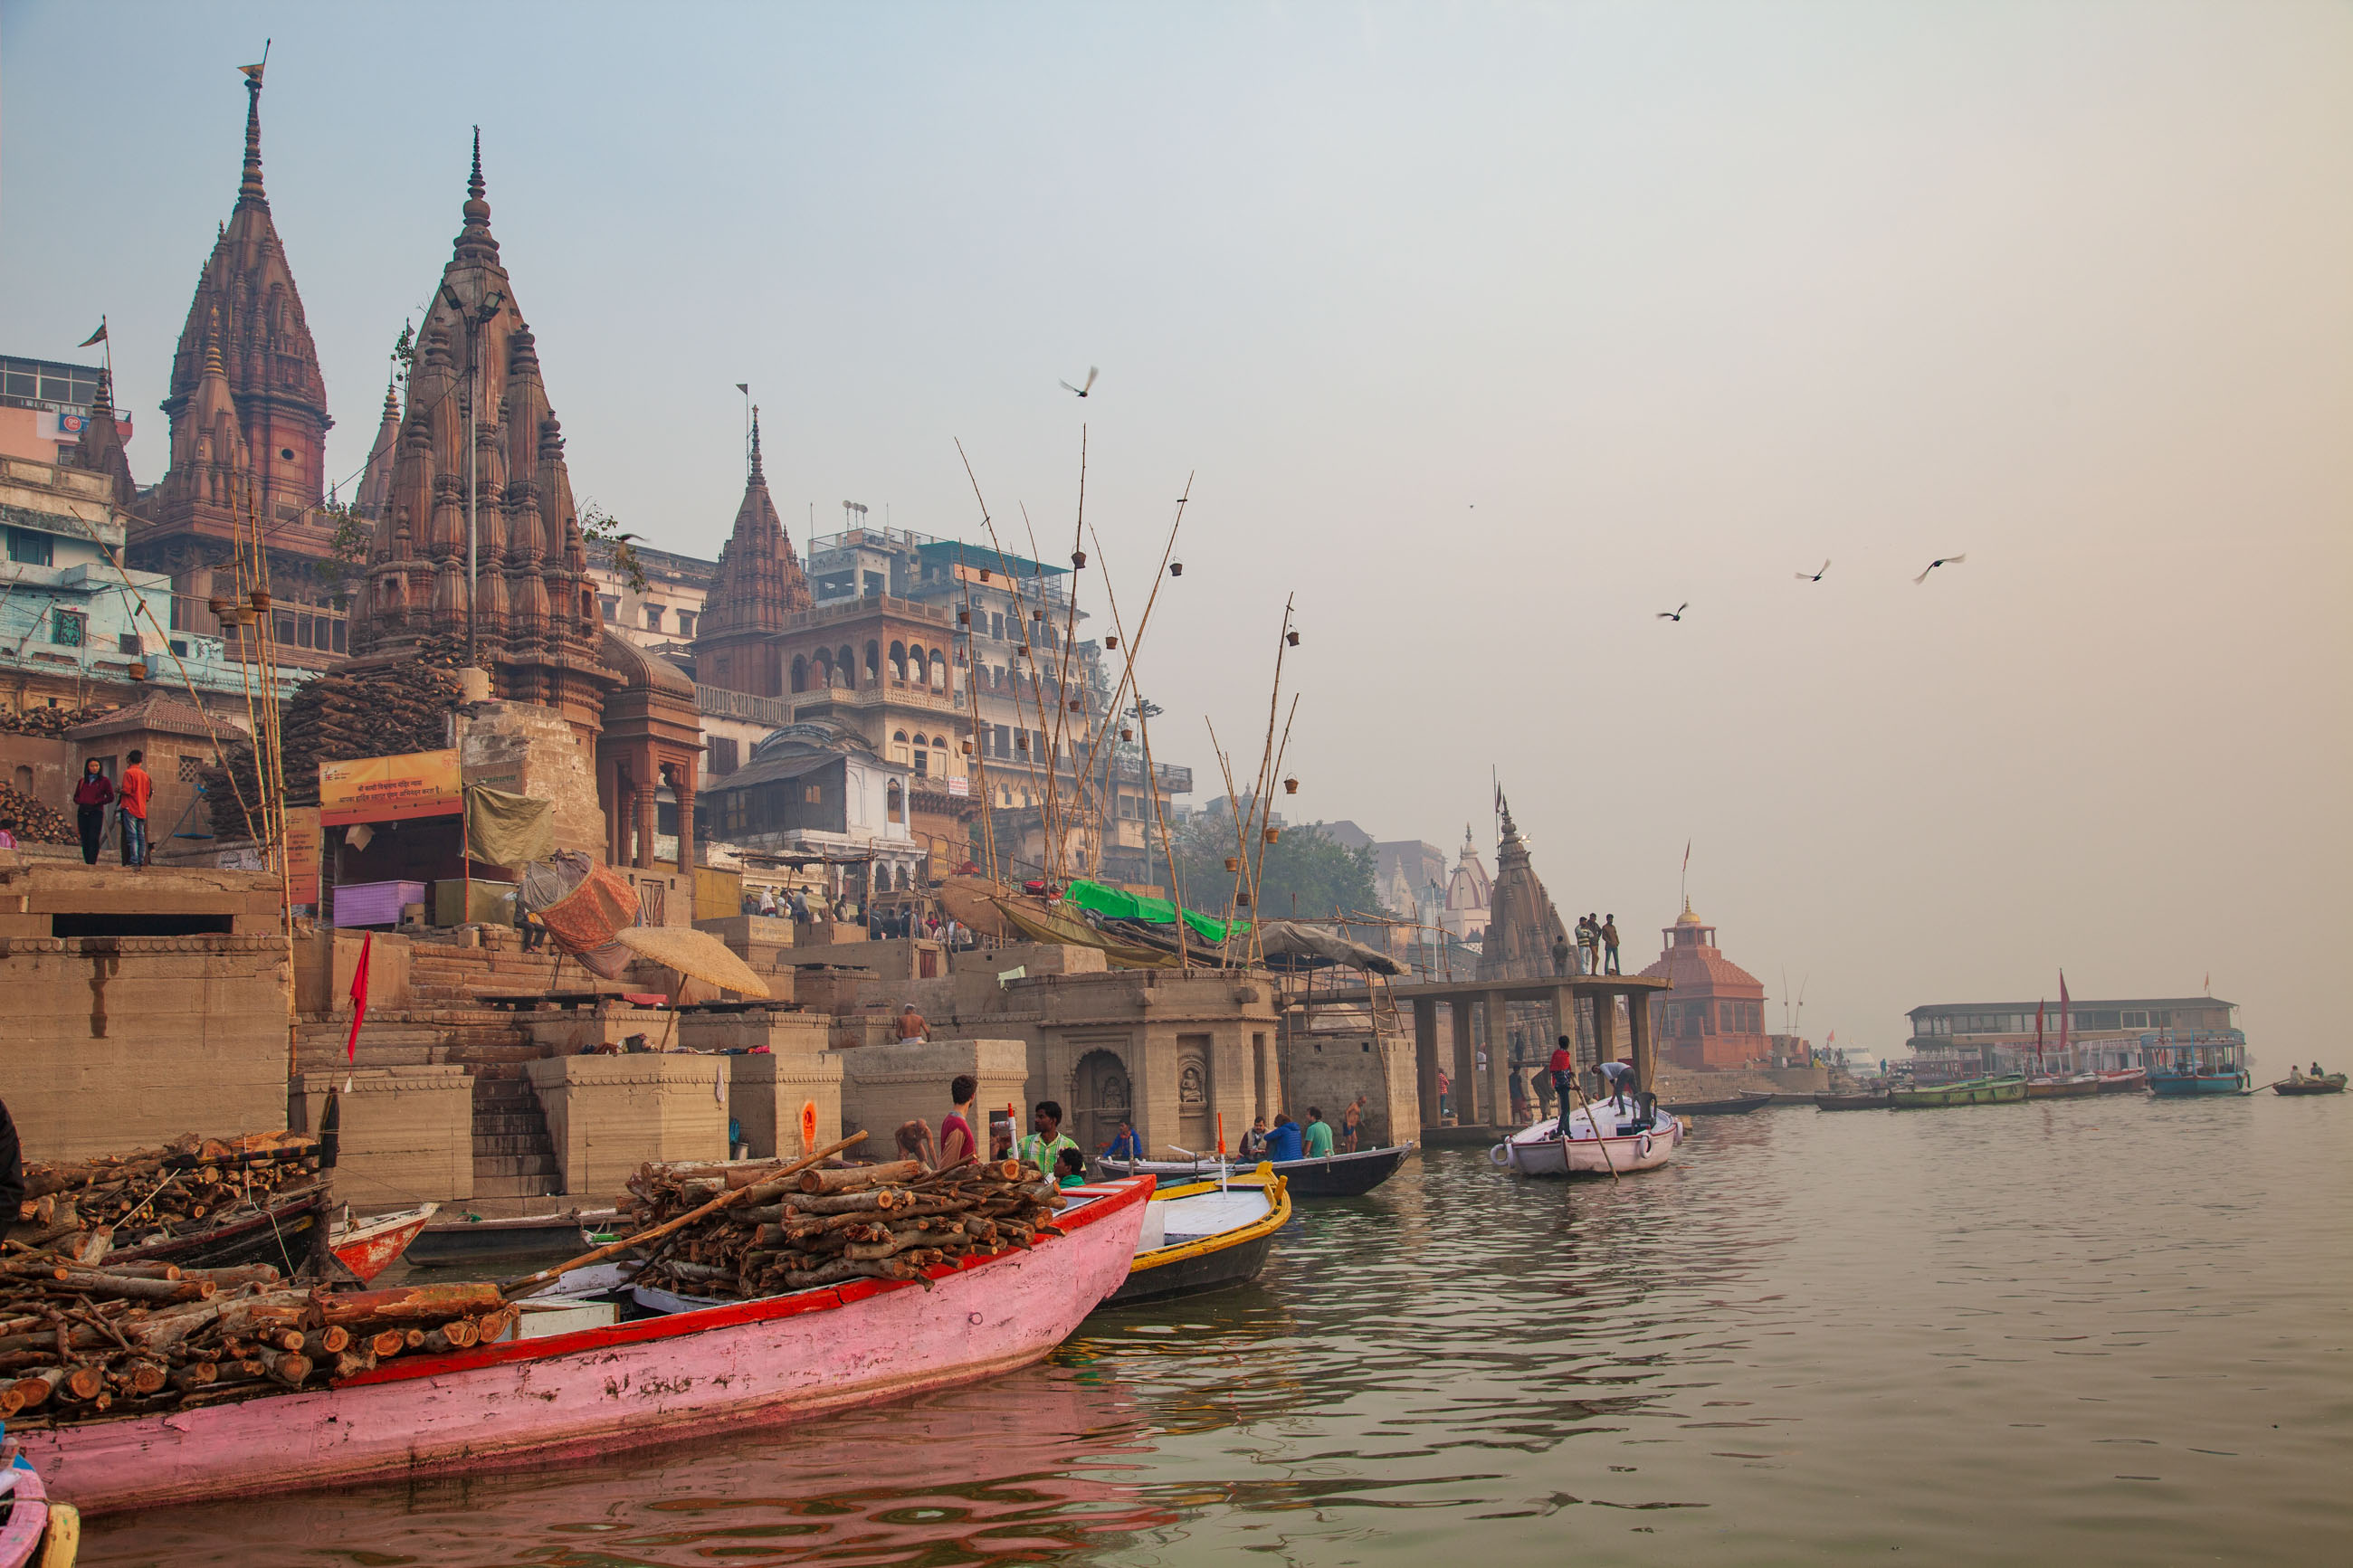 https://bubo.sk/uploads/galleries/4917/samuelklc_india_varanasi_img_0029.jpg